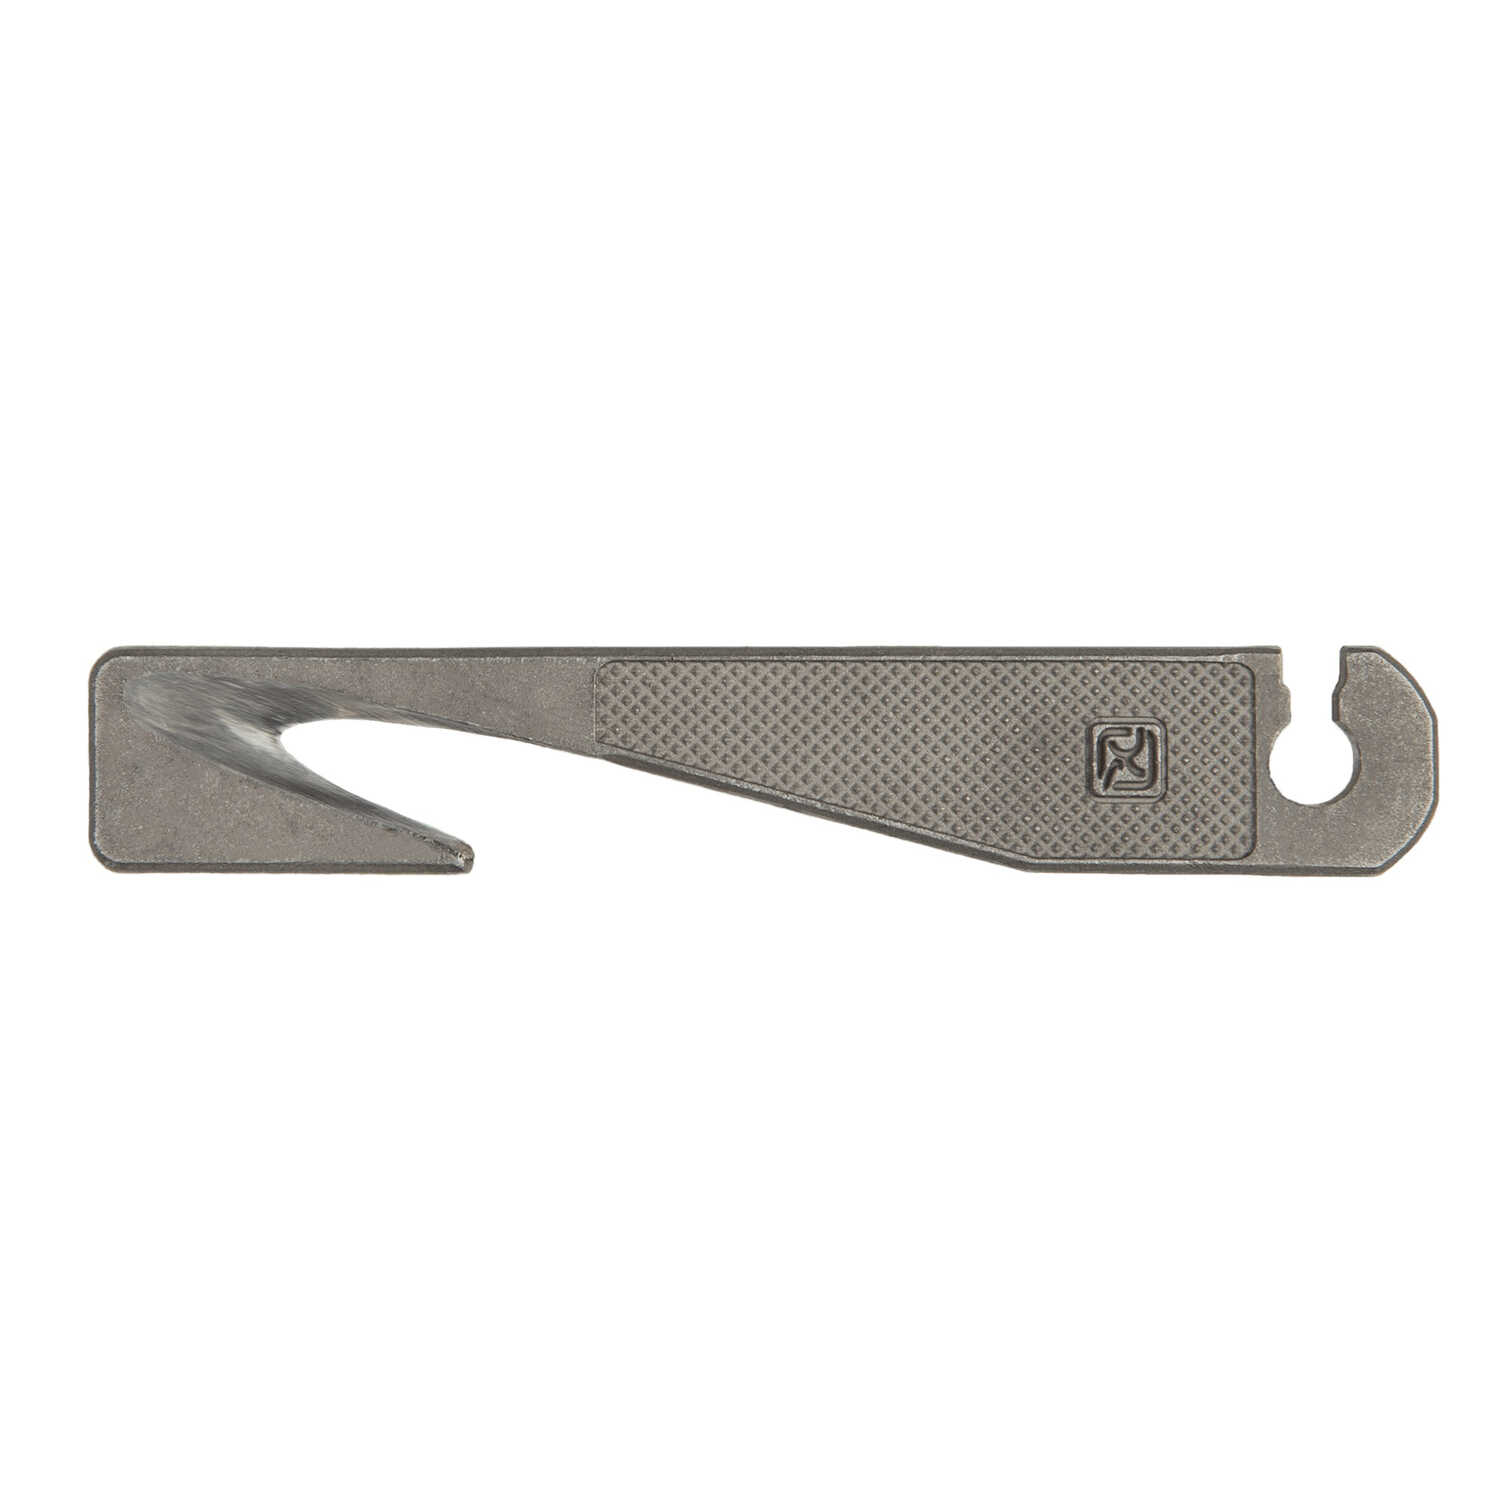 Klecker Knives  Stowaway Tools  2.62 in. L Gray  Belt Cutter